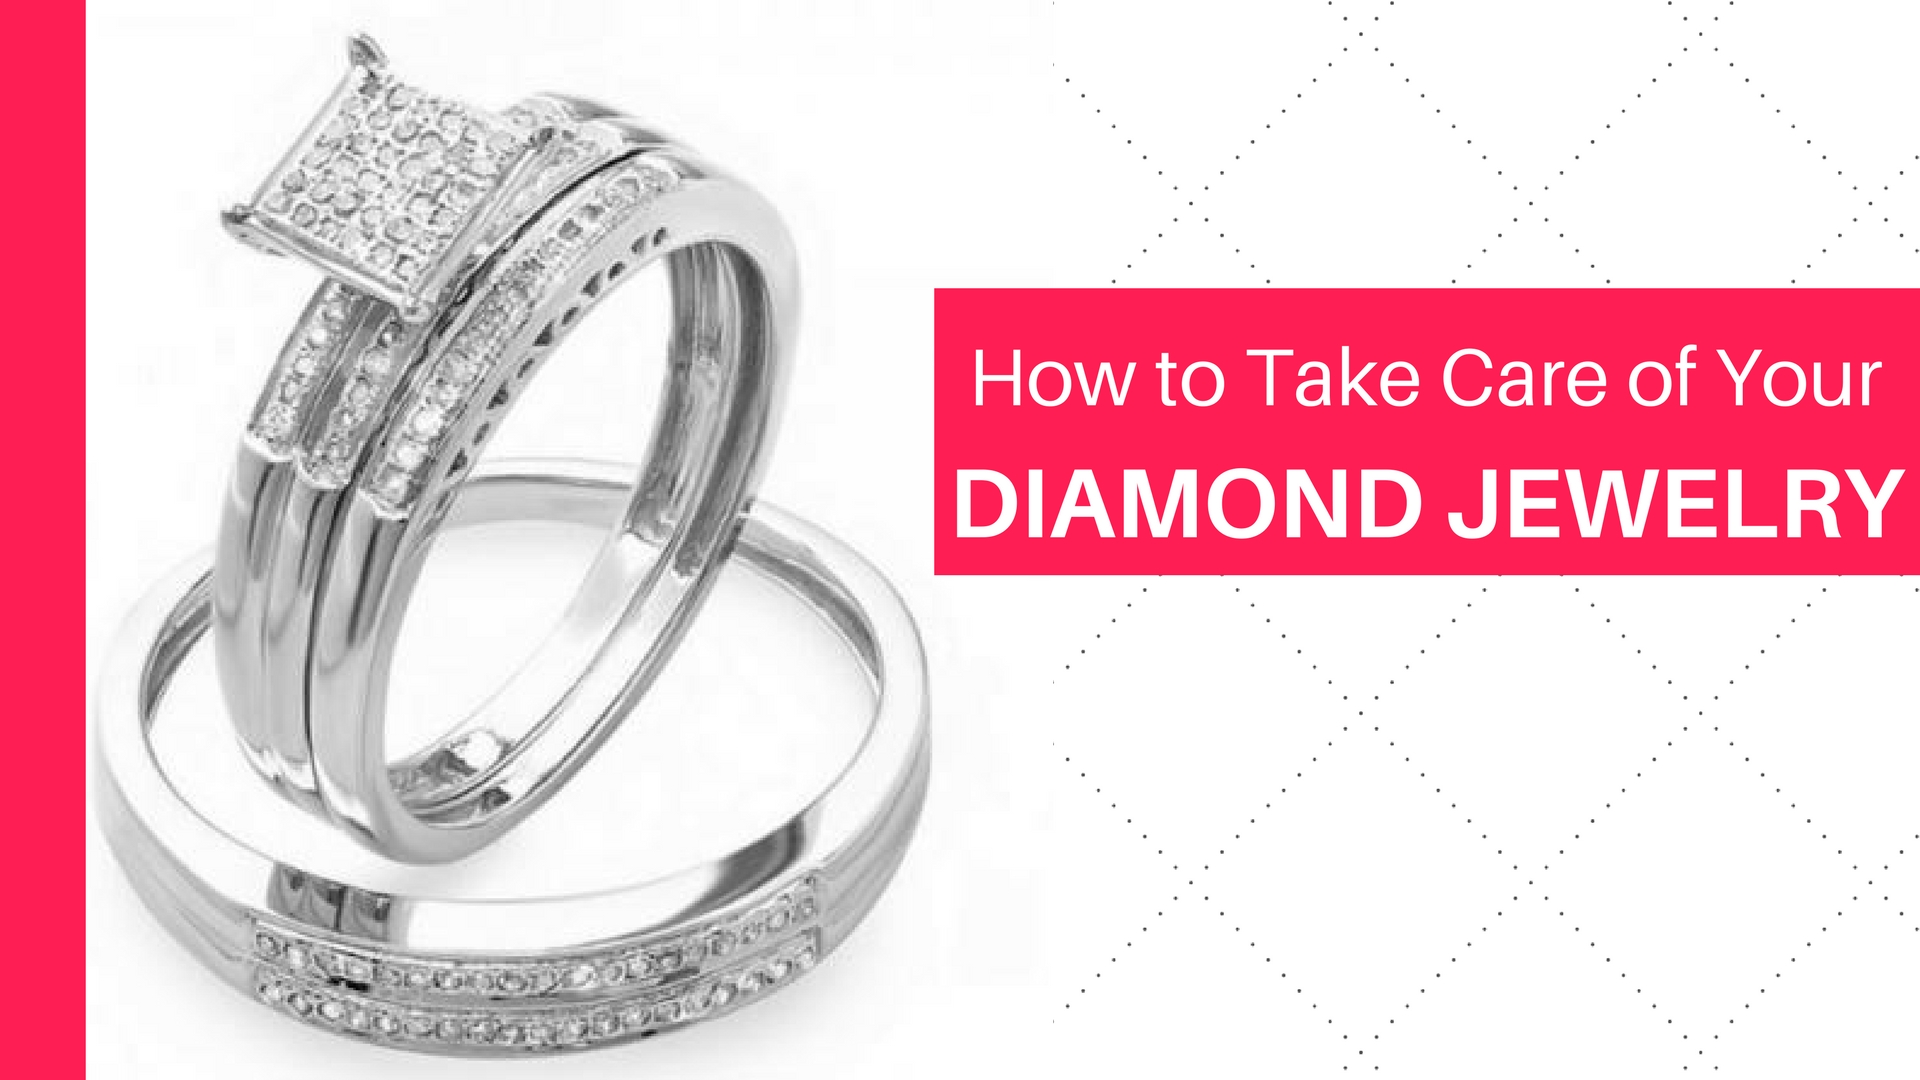 How to Take Care of Your Diamond Jewelry - Dazzling-Rock